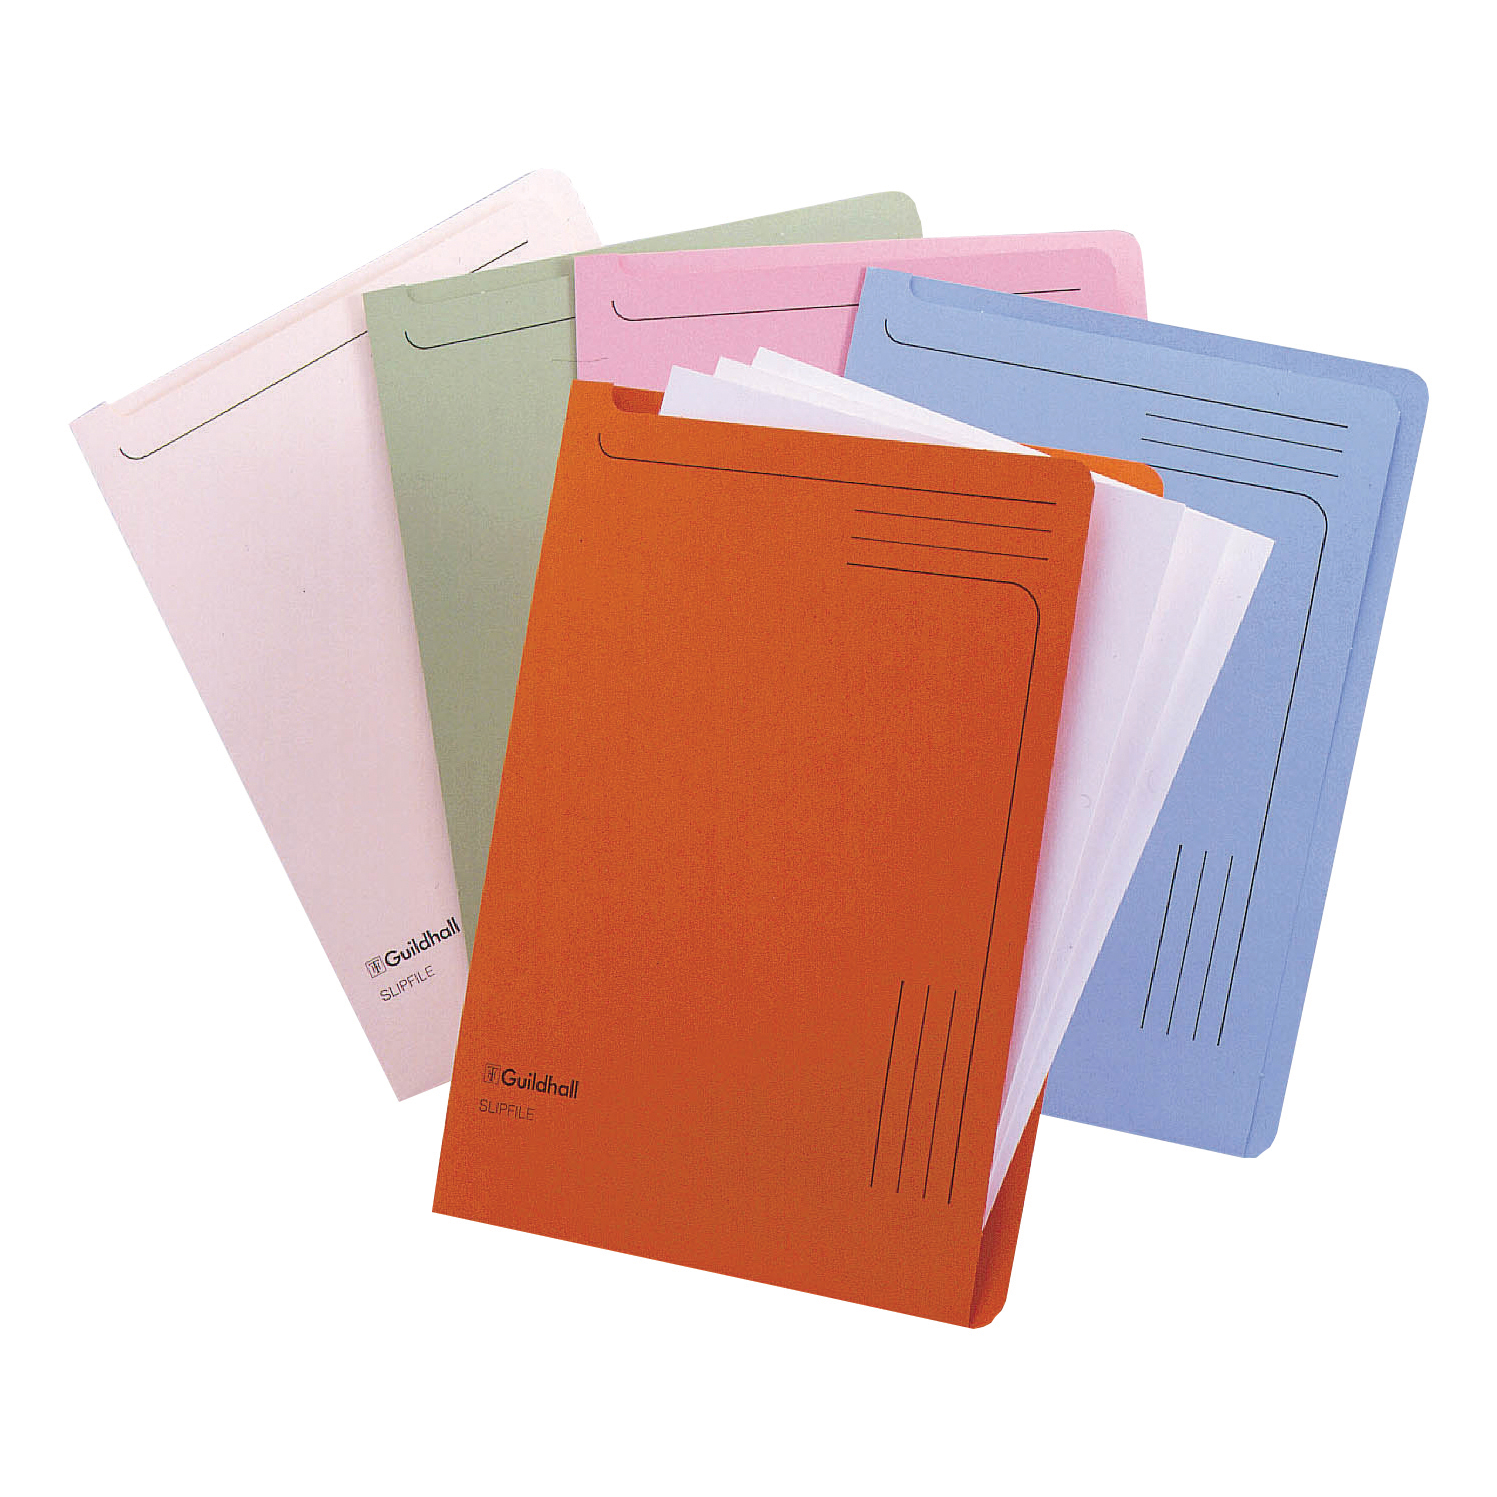 Guildhall Slipfile 230gsm Capacity 50 Sheets A4 Pink Ref 4604Z Pack 50